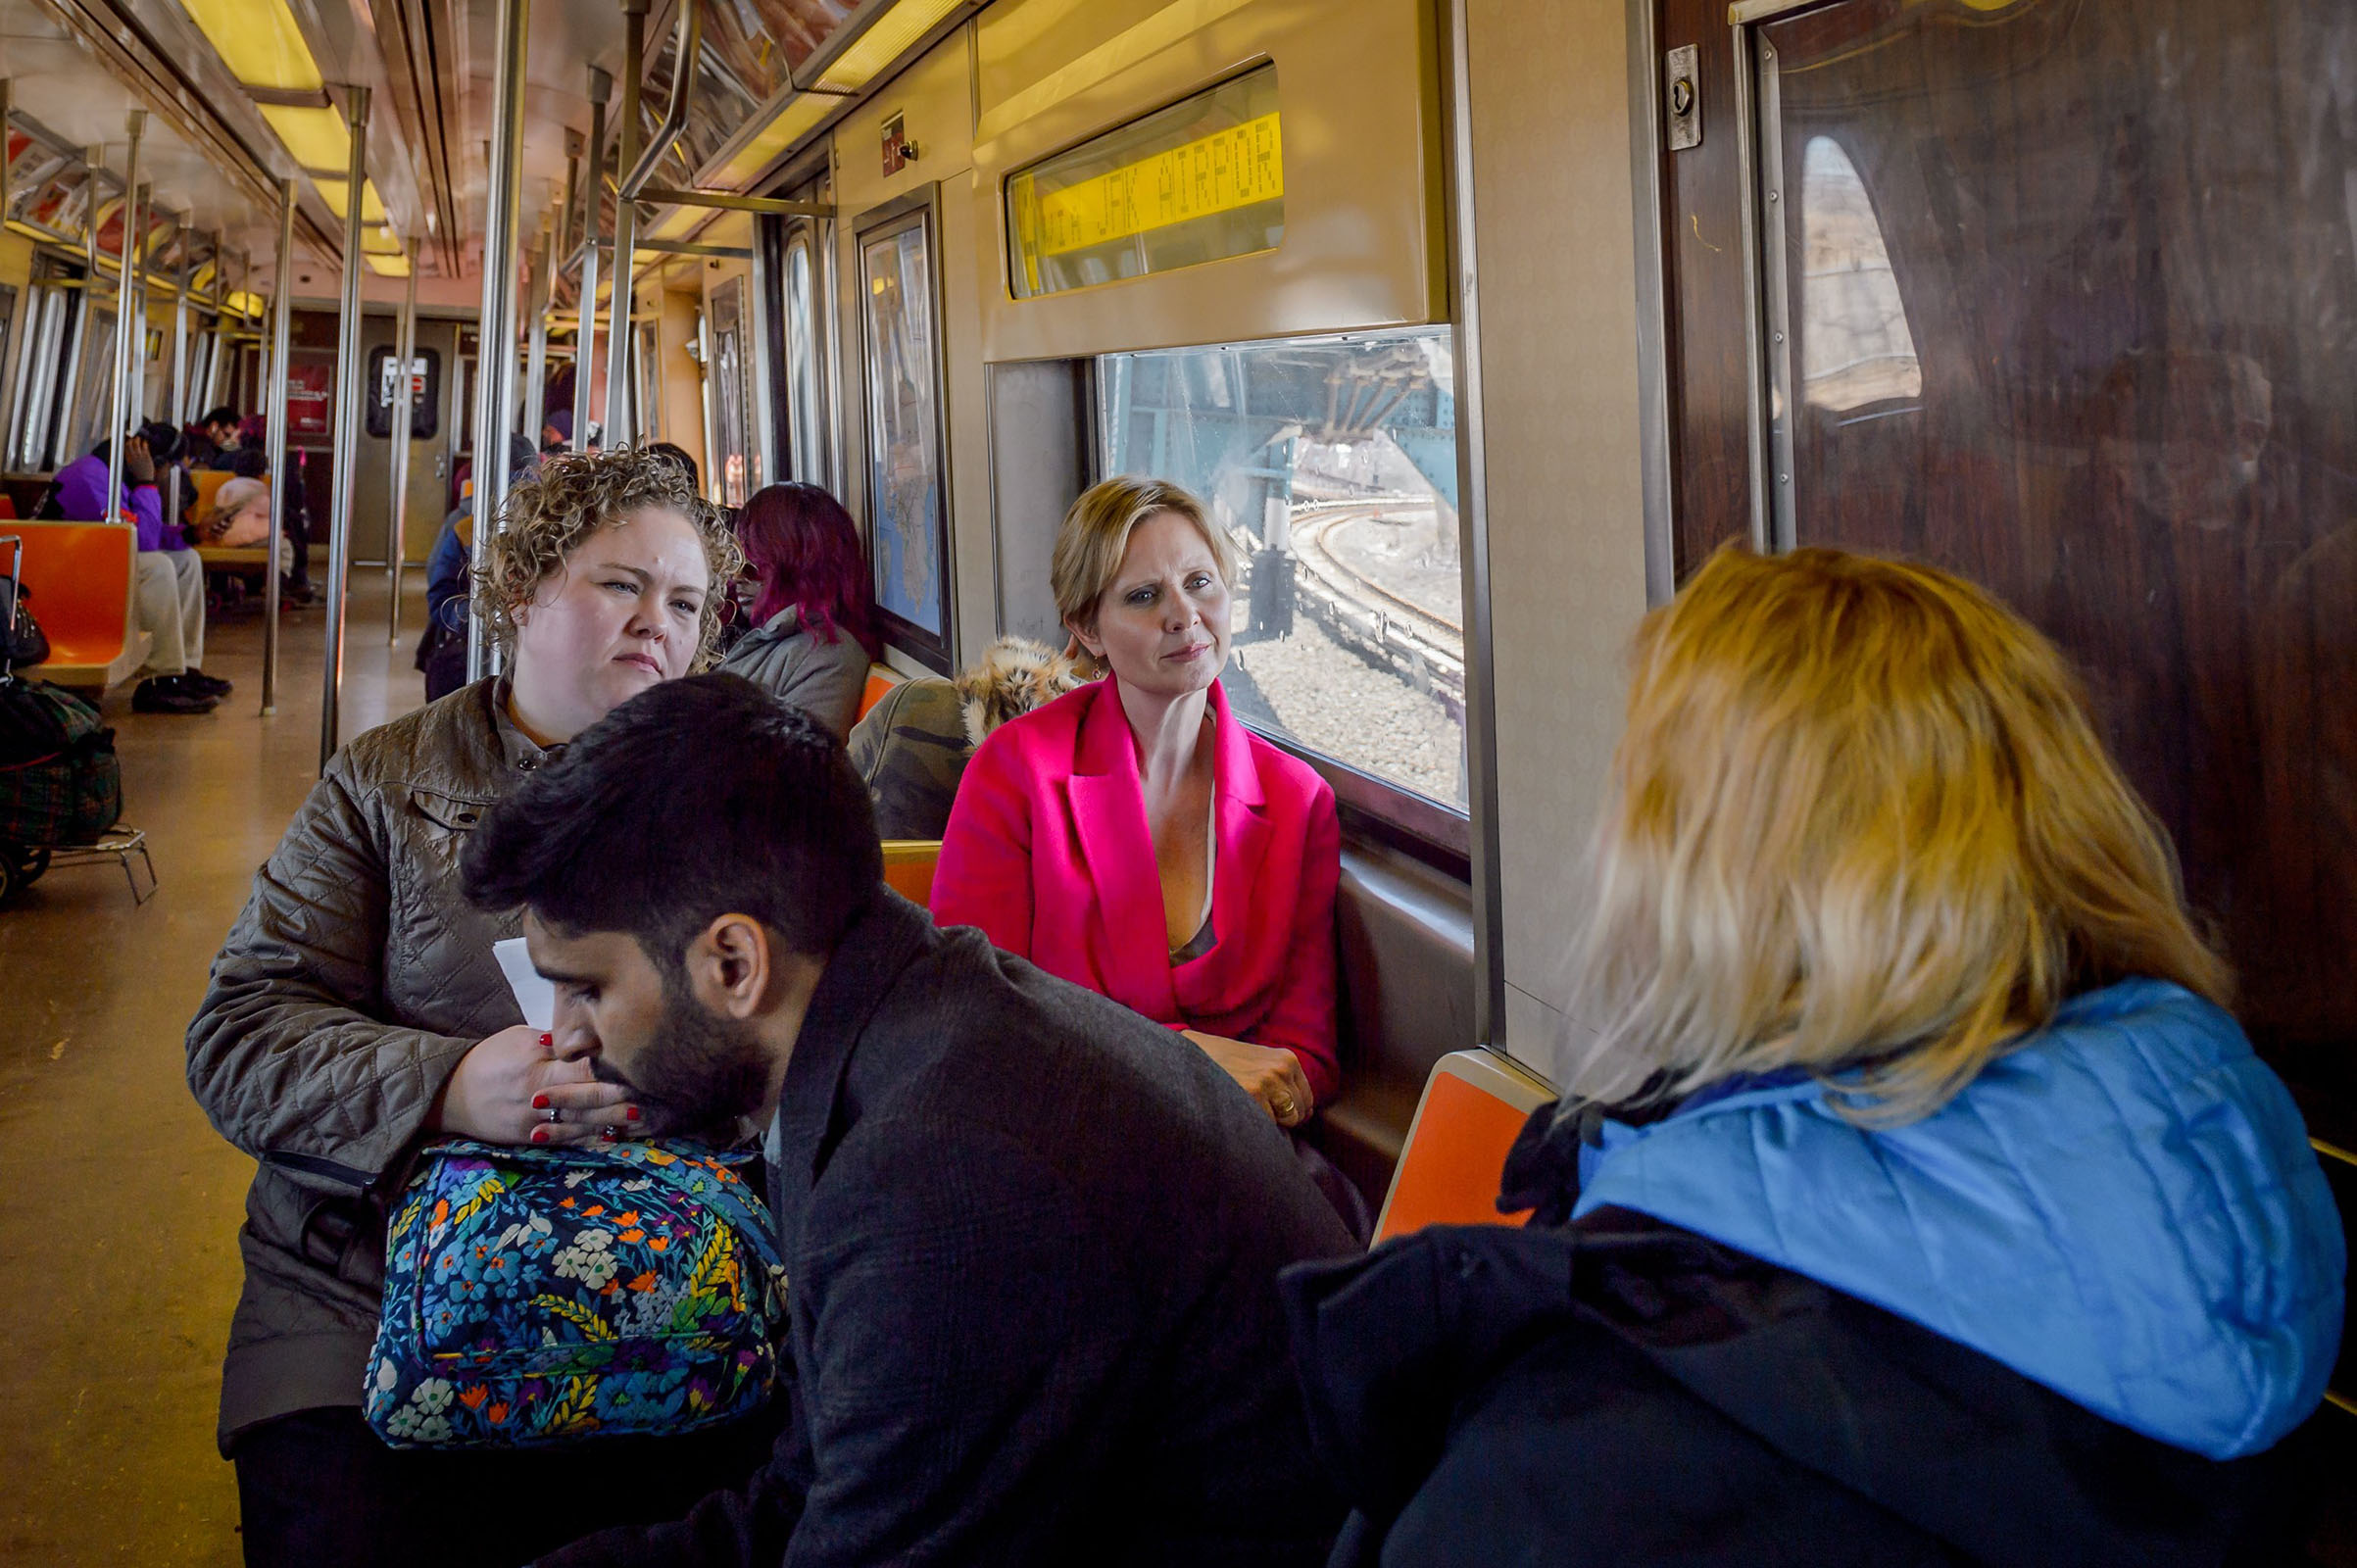 Cynthia Nixon, a lifelong New Yorker, actor, progressive advocate and candidate running for governor takes the subway to the Rockaways on April 20, 2018.